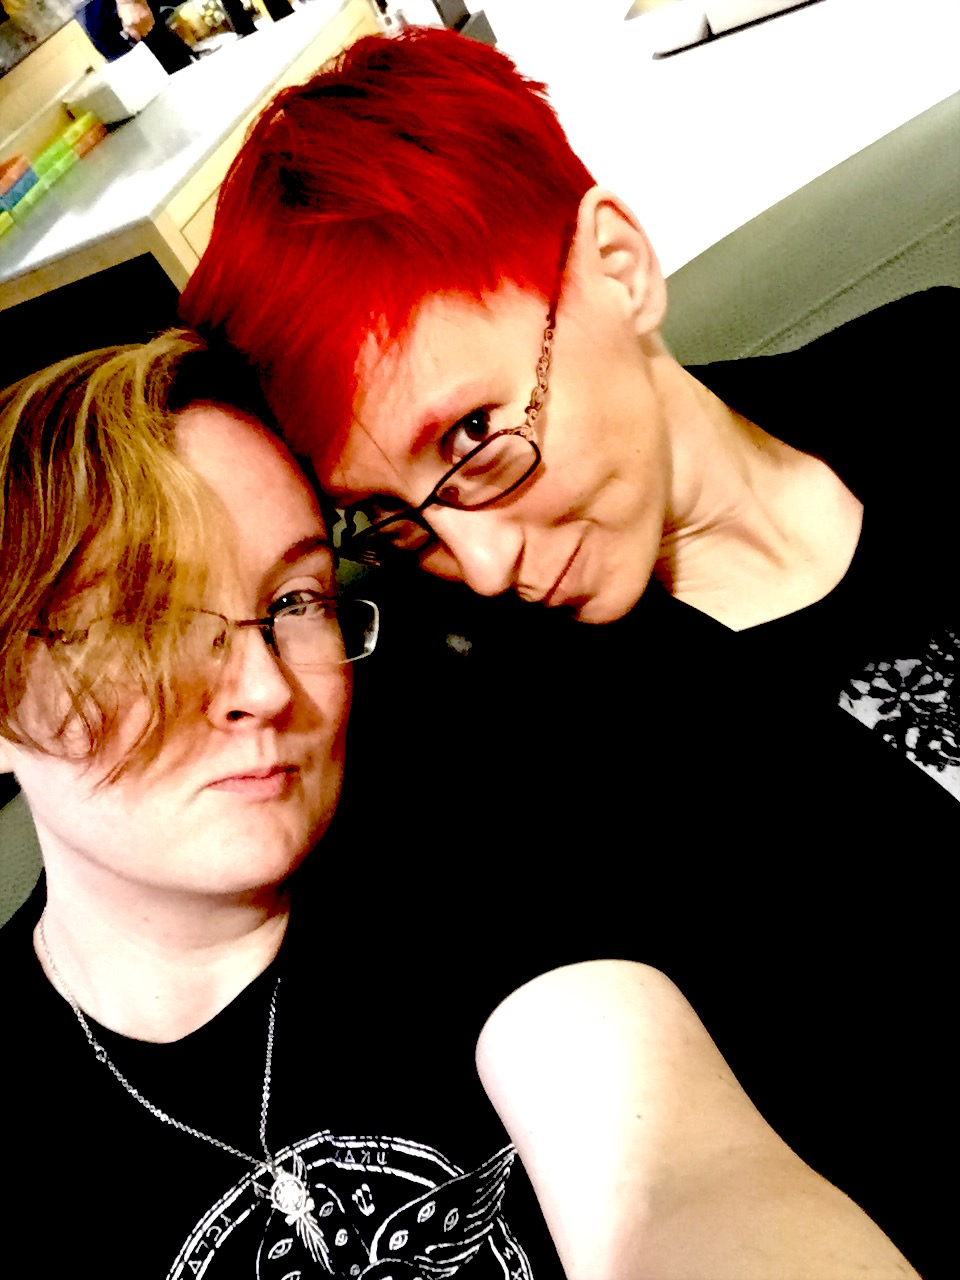 I'm the one with red hair, in case you couldn't tell. If Michelle's gender confuses you, don't worry --  you're not alone !